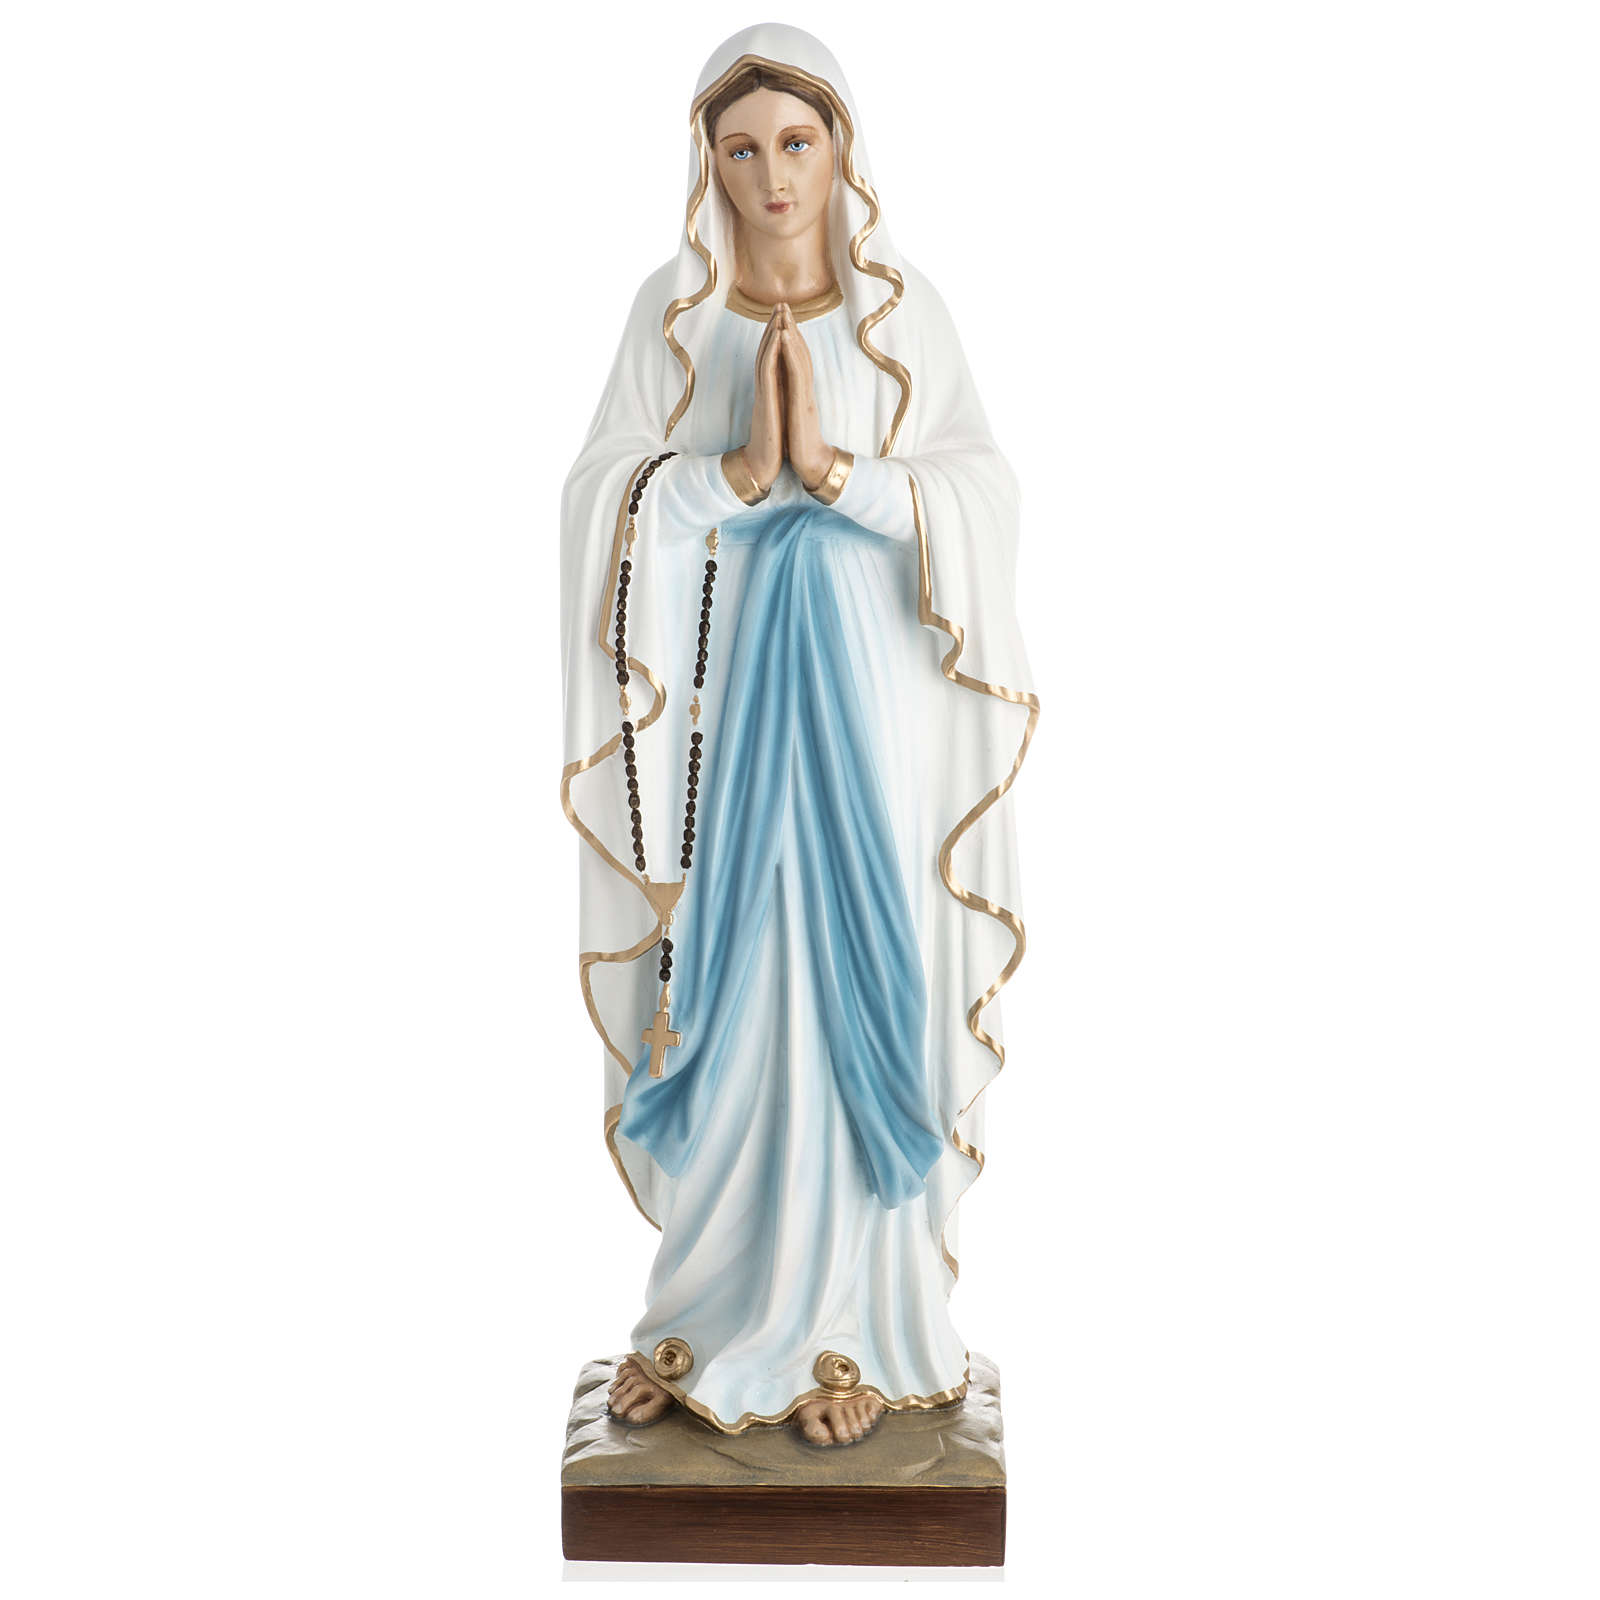 Statue of Our Lady of Lourdes in fibreglass 60 cm for EXTERNAL USE 4